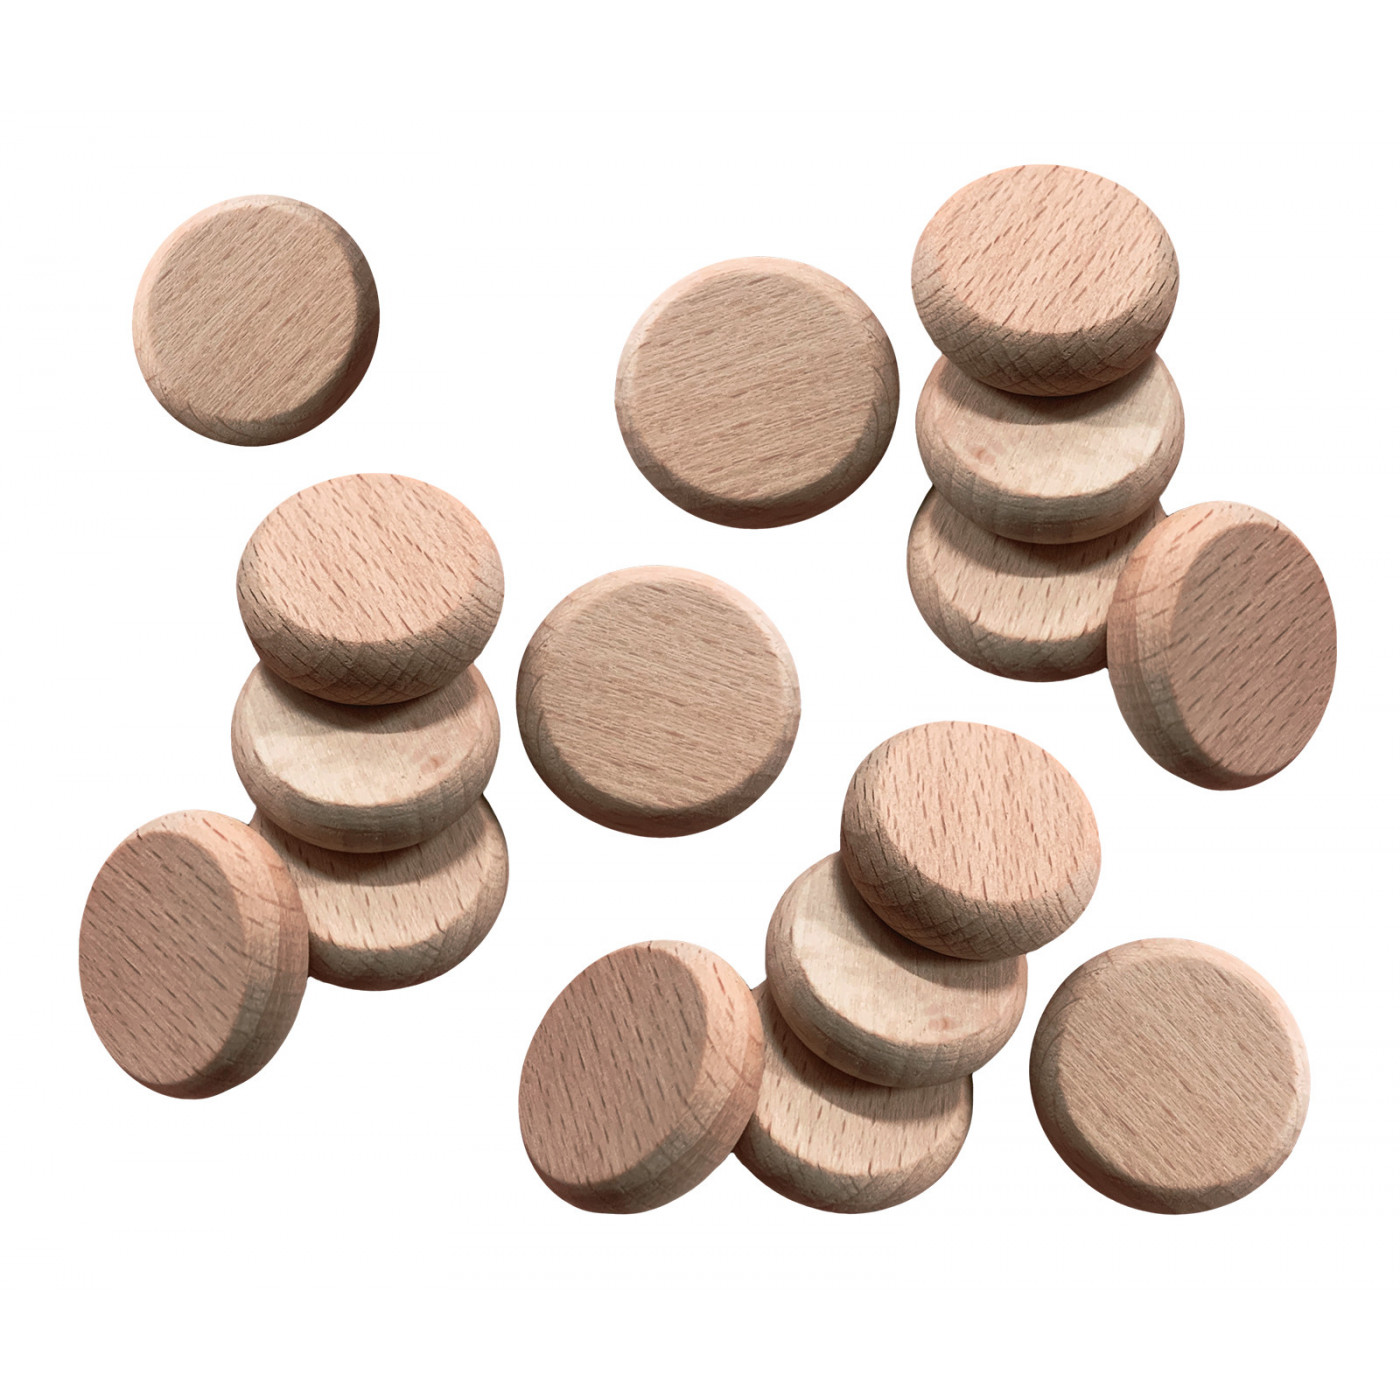 Set of 100 wooden discs (rounded edges, dia: 2.5 cm, thickness: